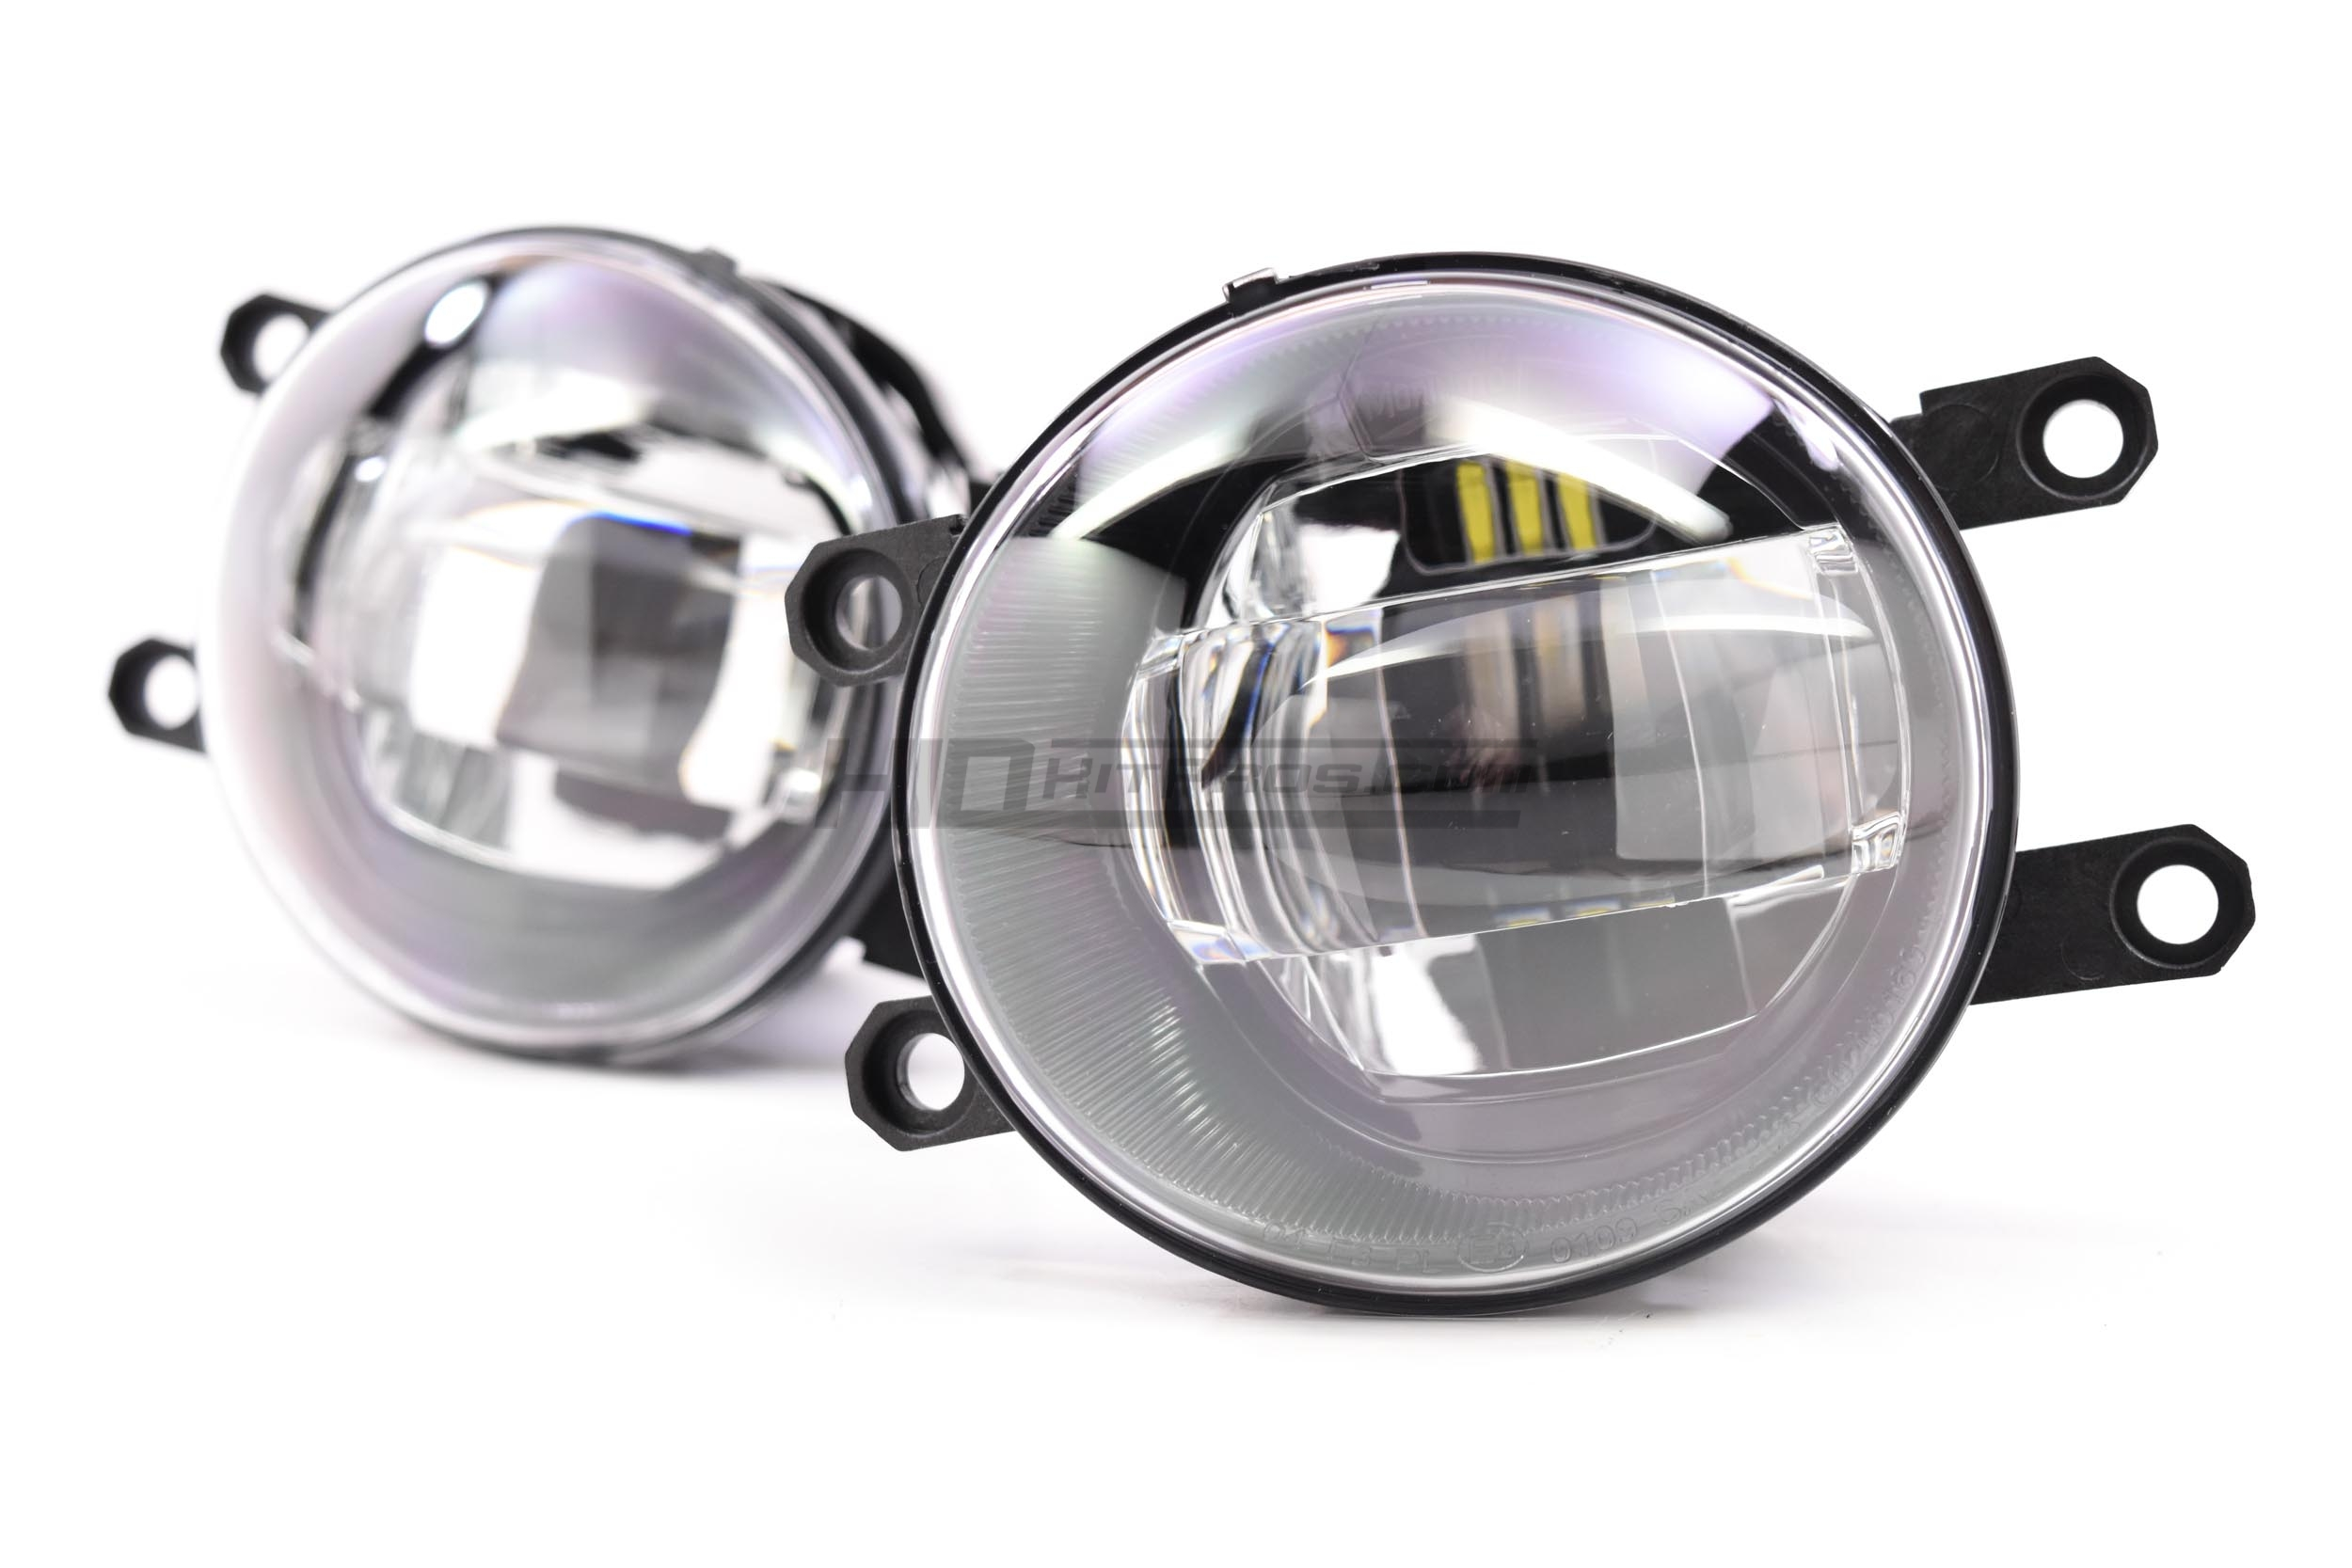 Toyota Oval Morimoto Xb Led Fogs Hid Kit Pros Fog Lights Driving Lamps W Wiring Fits Most Cars Trucks